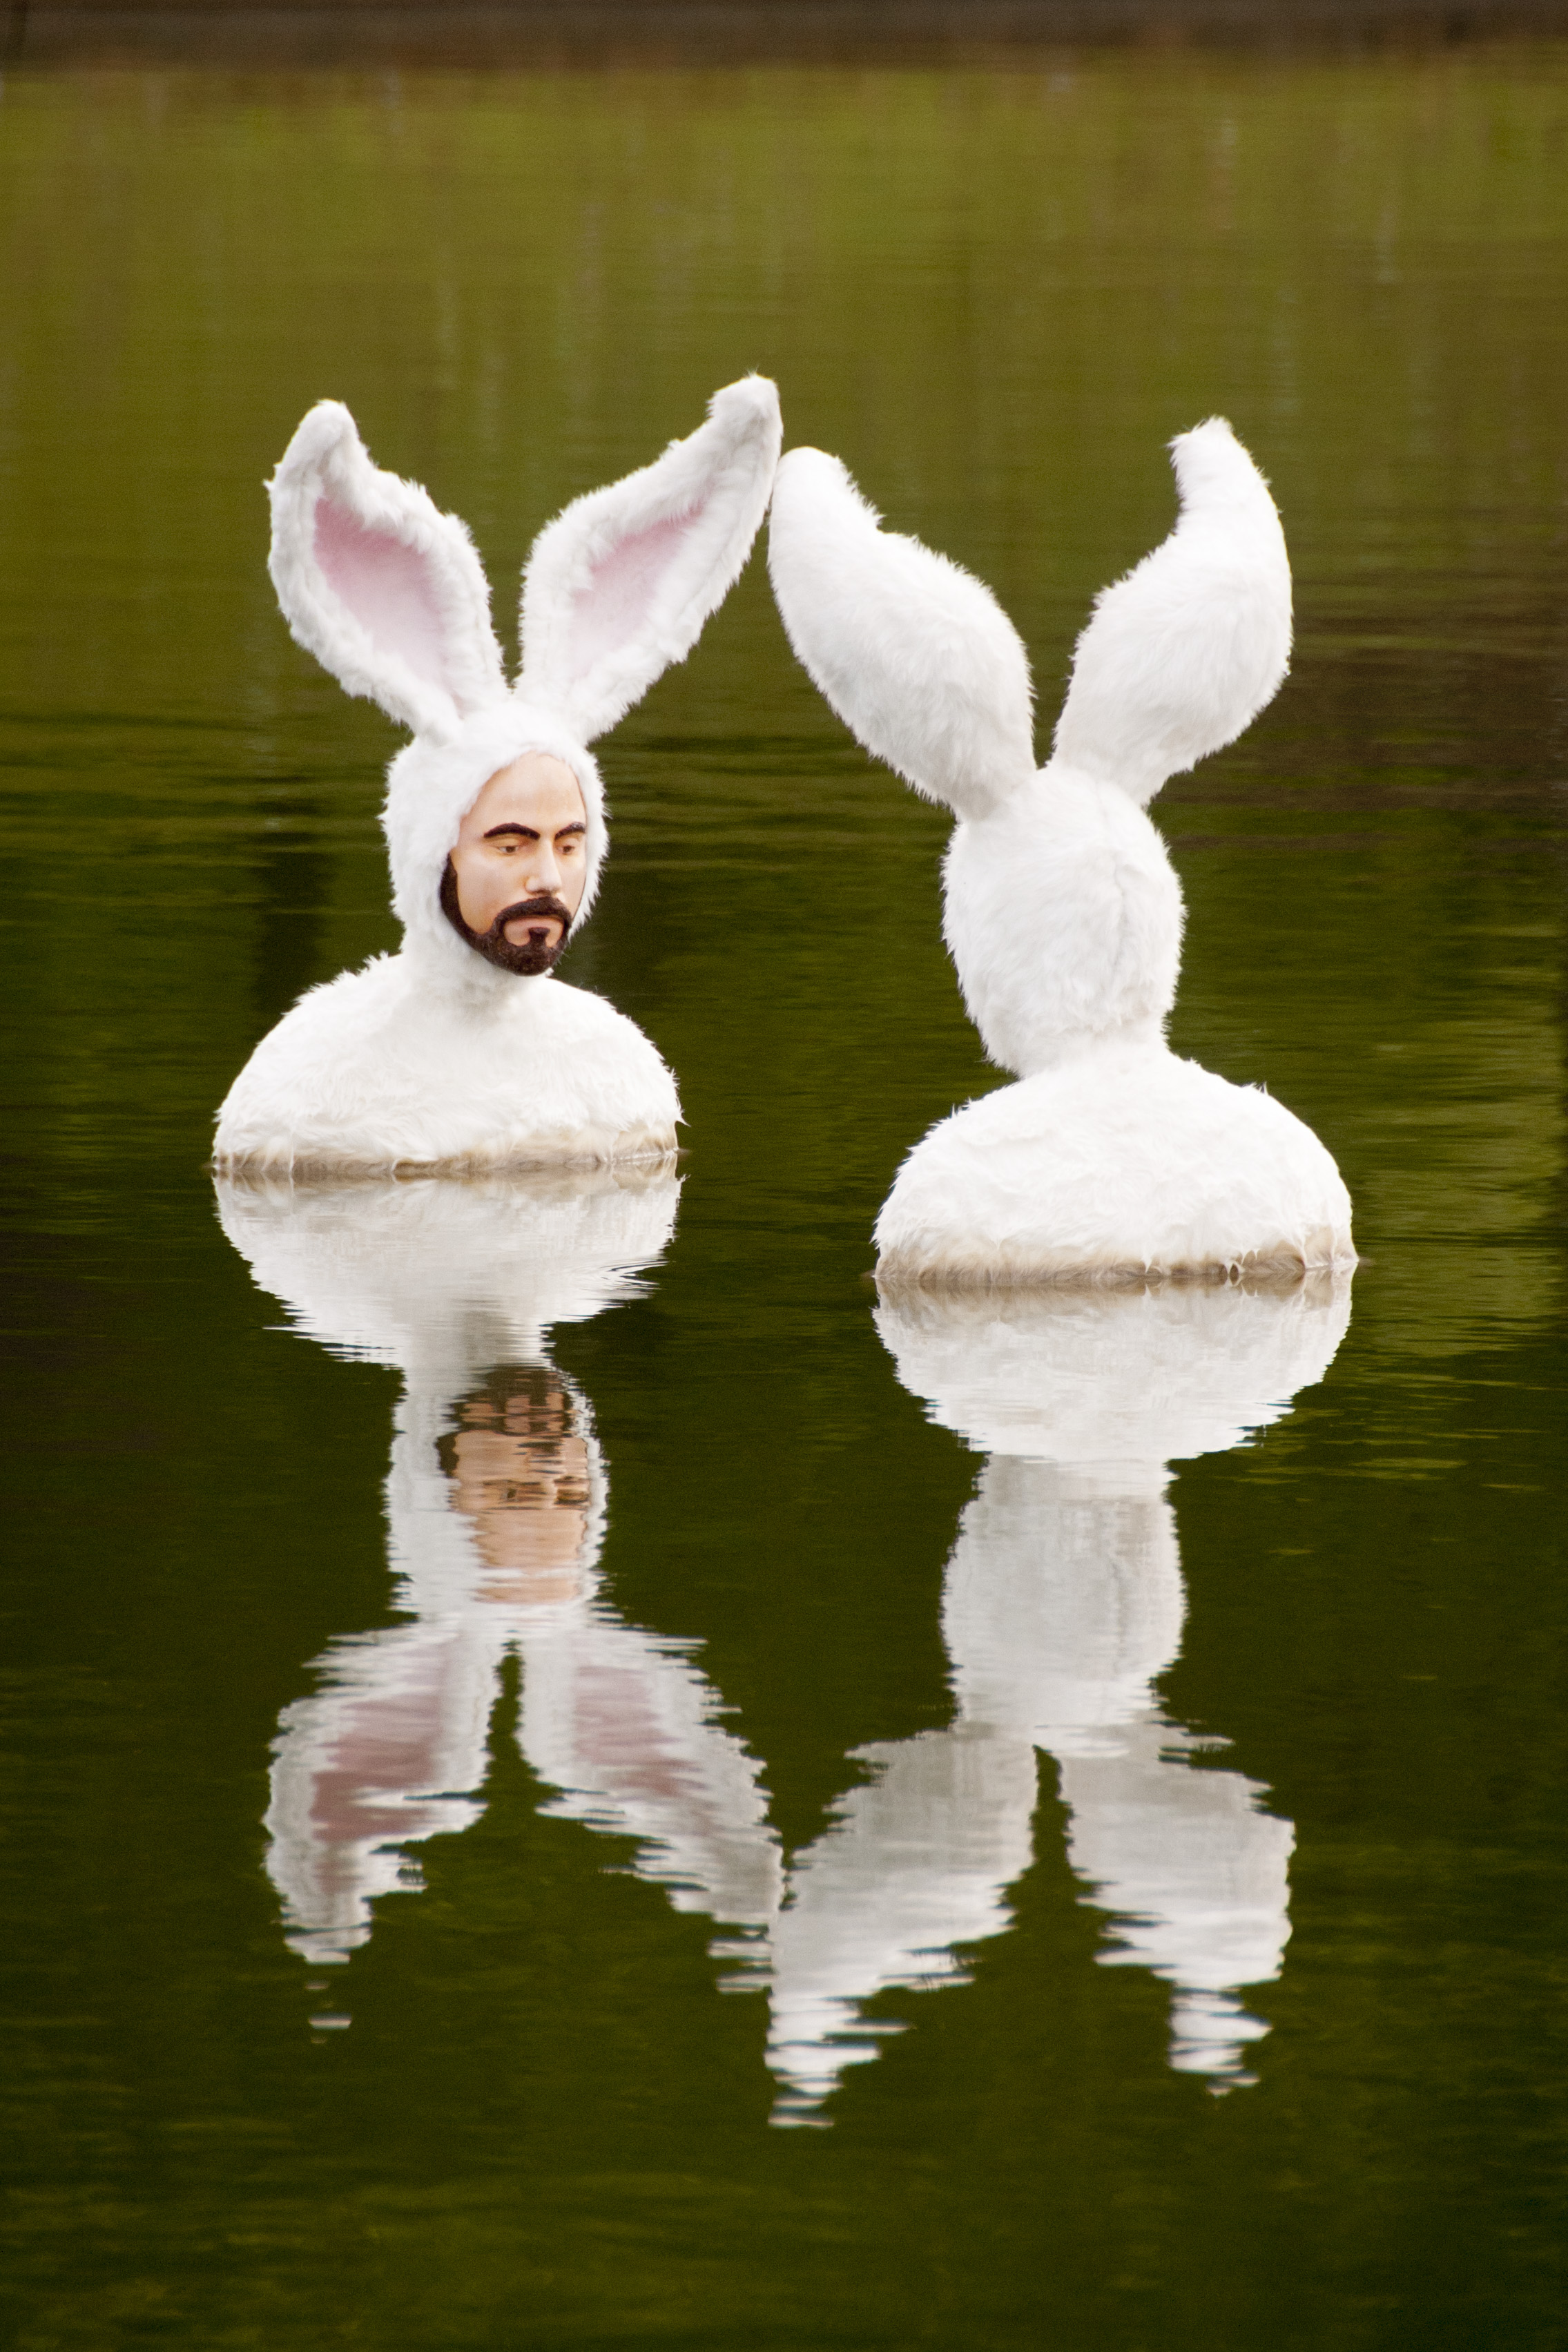 Self-Portrait as Bunnies by Alex Podesta